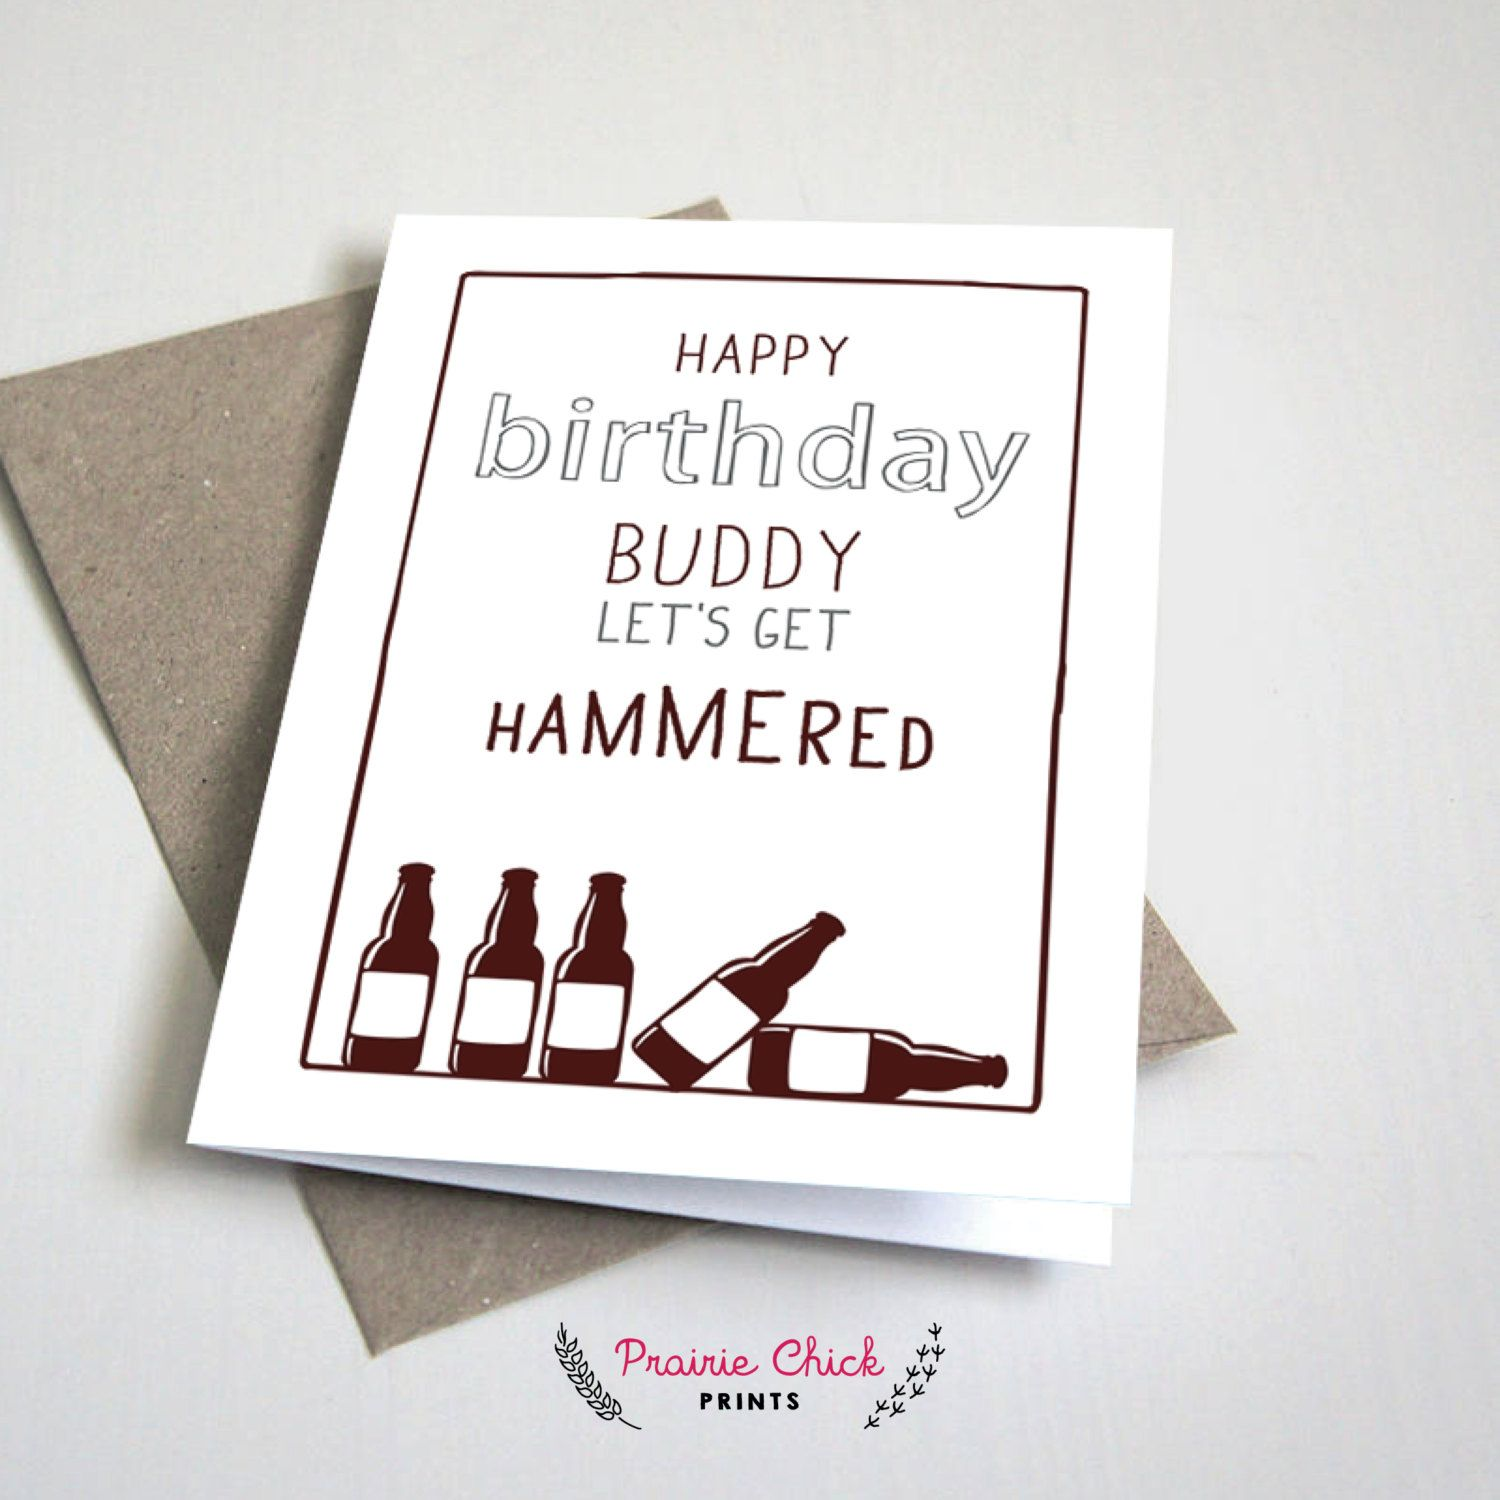 happy birthday buddy let's get hammered card / funny / birthday